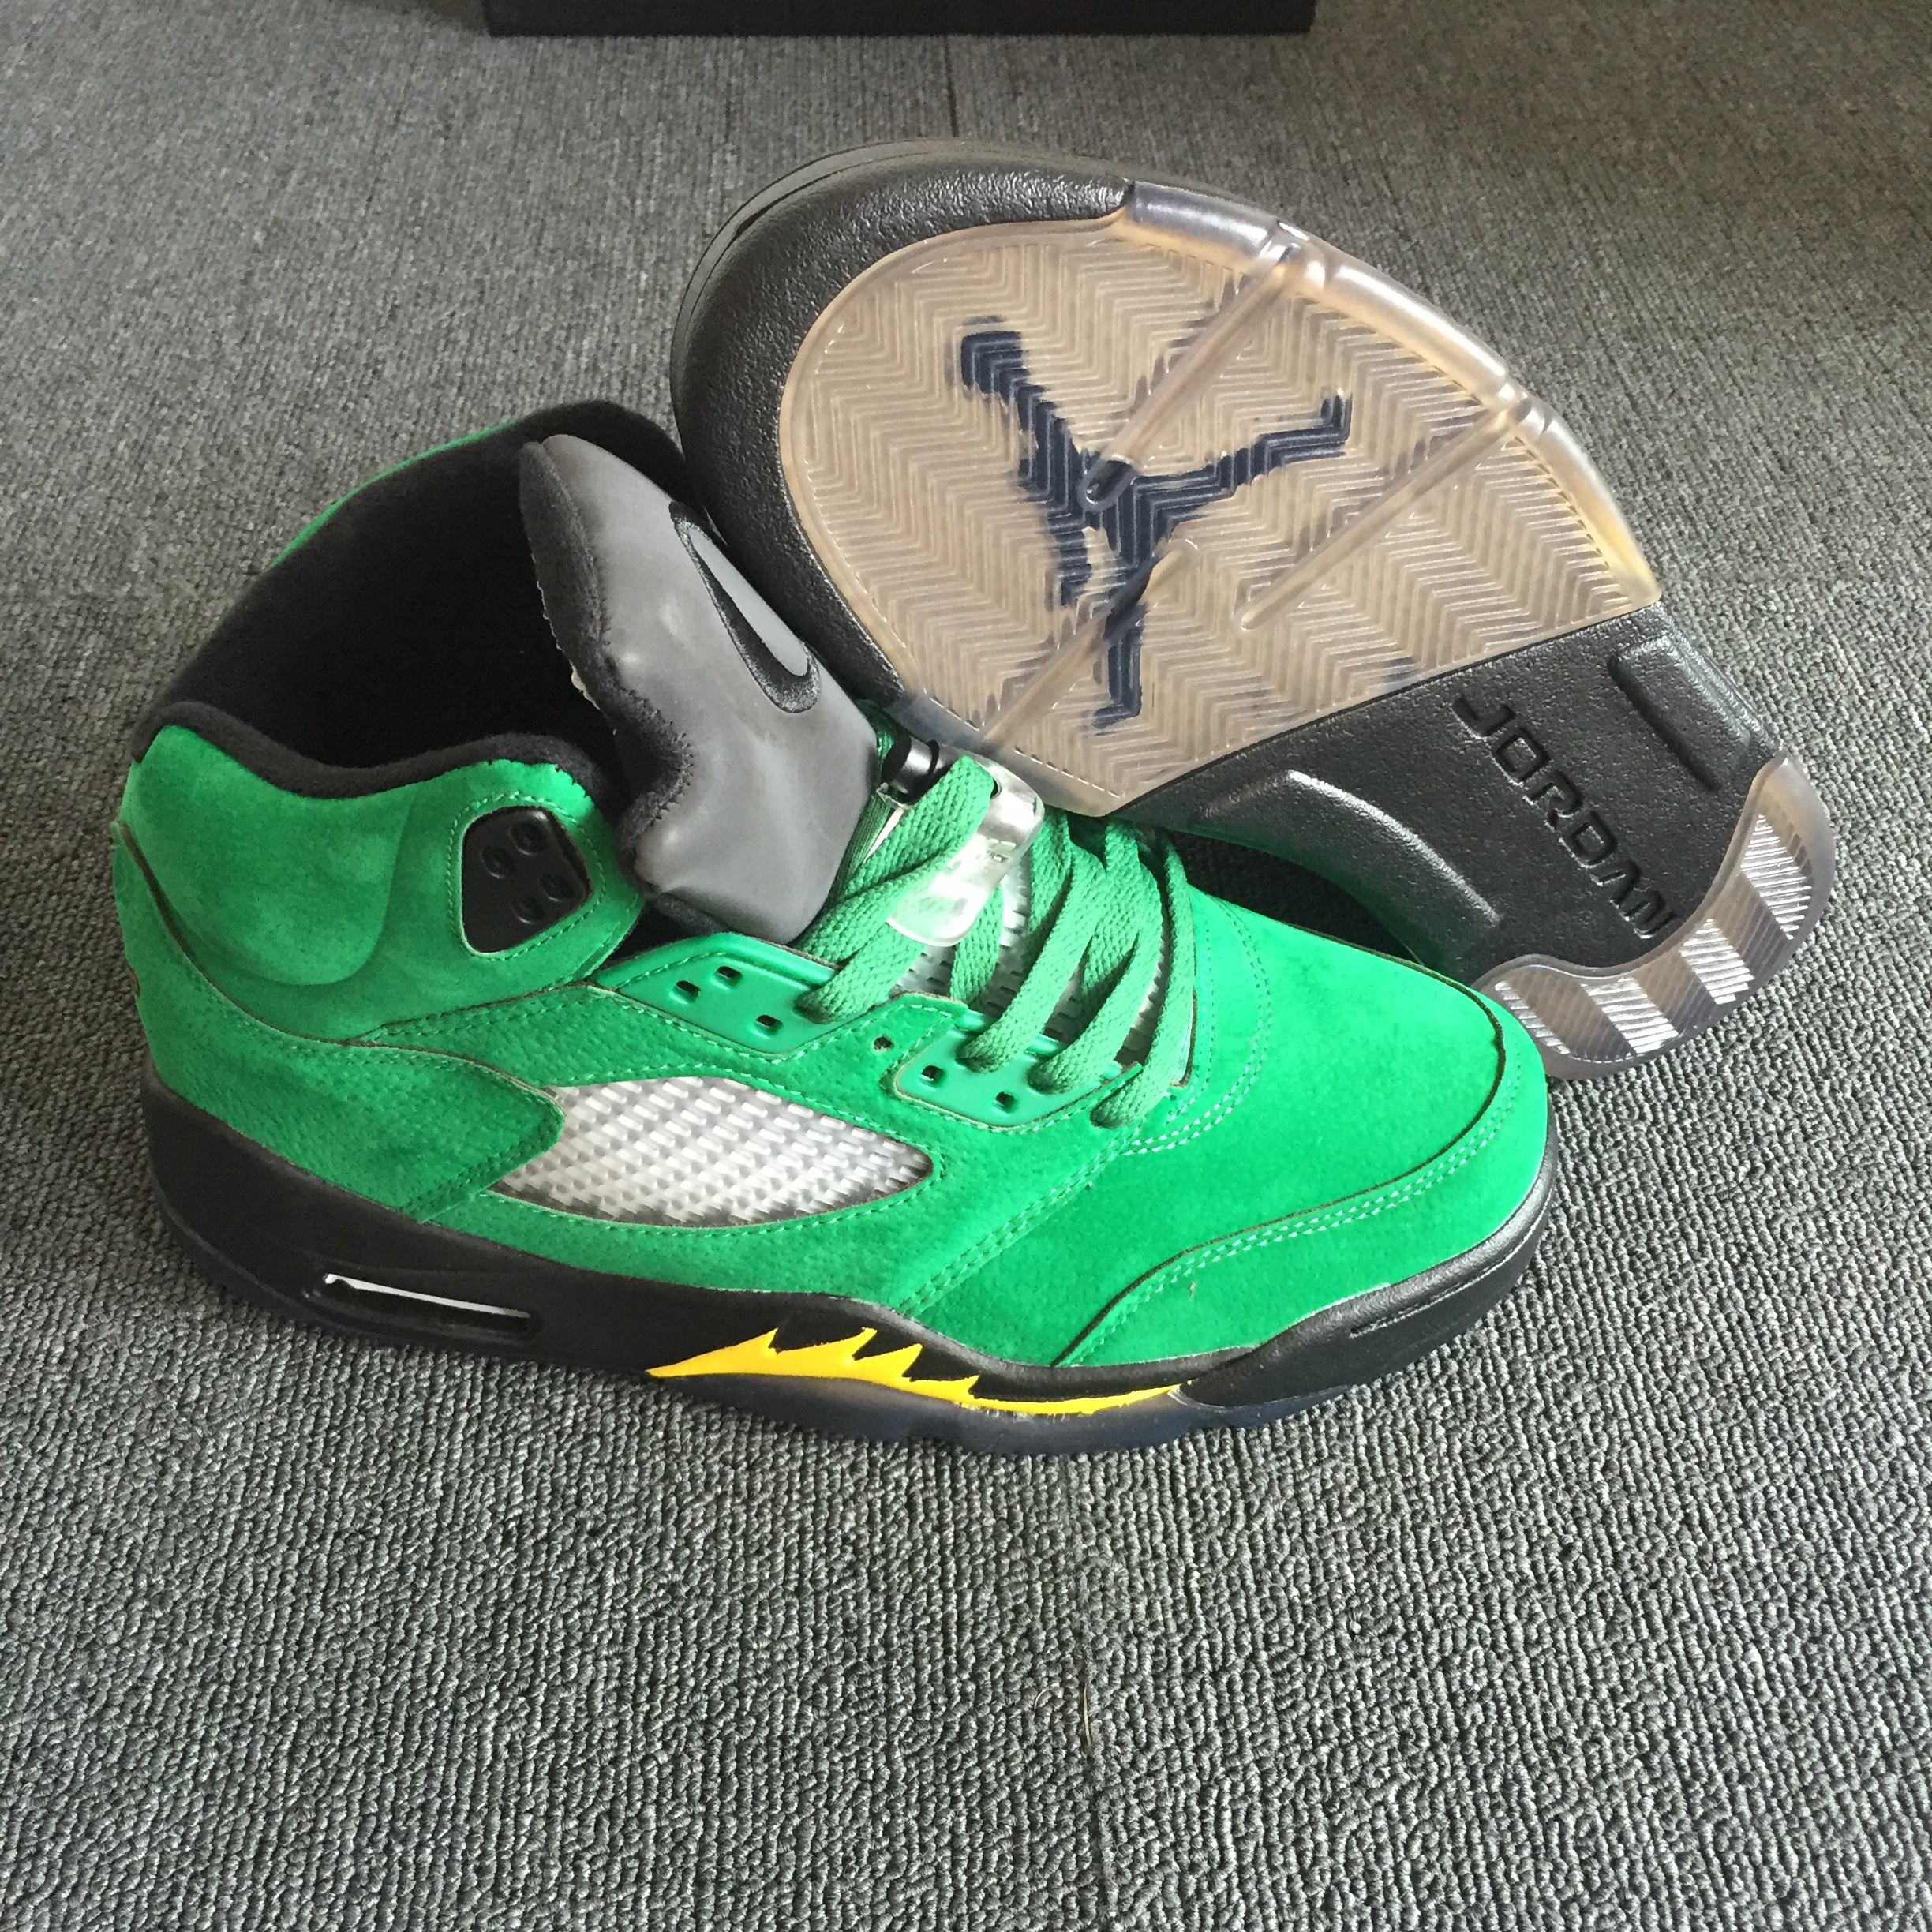 2018 Air Jordan 5 Oregon PE Green Yellow Black Shoes